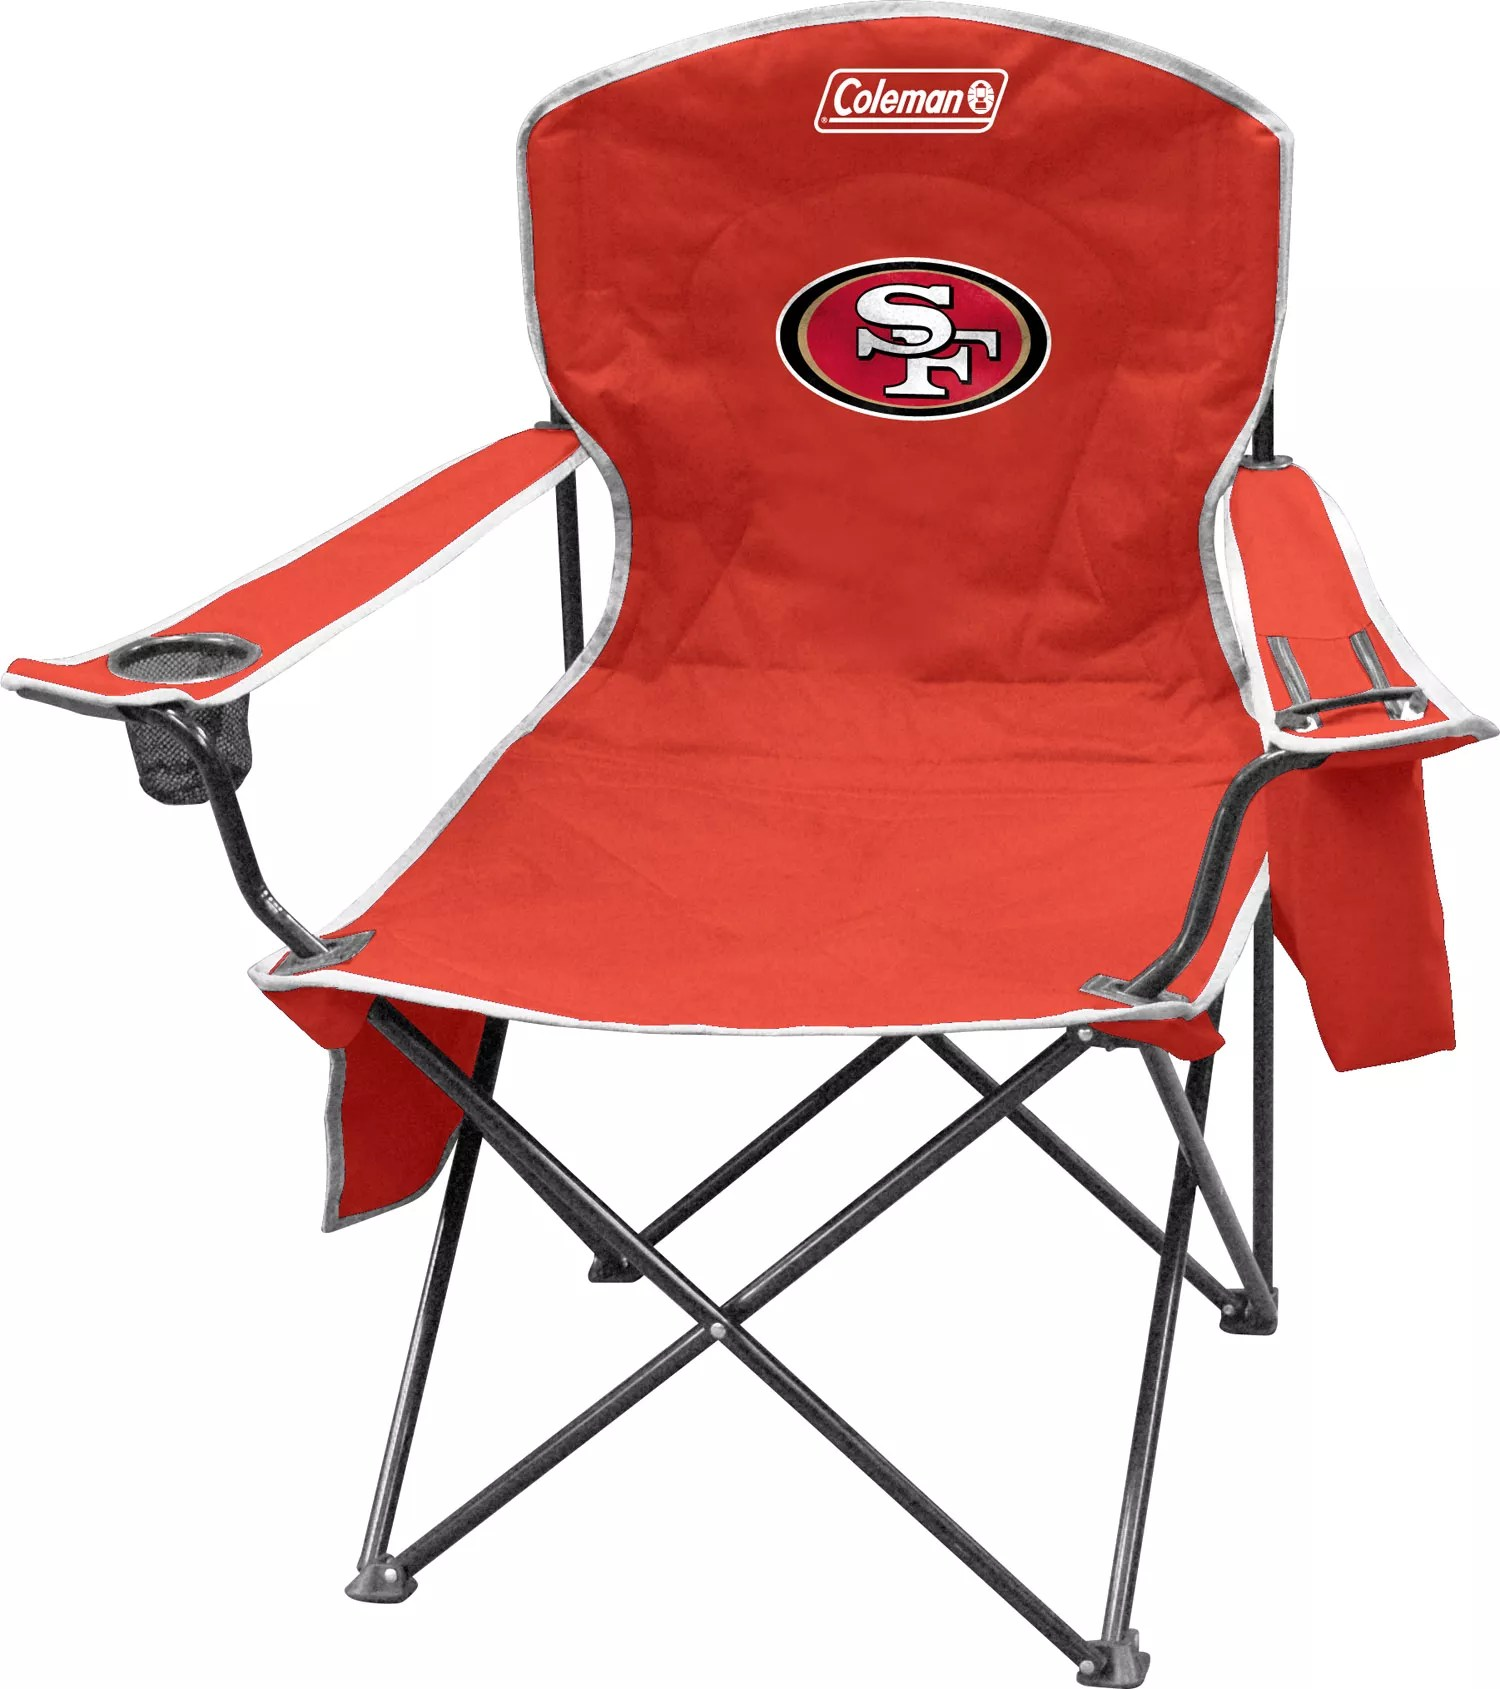 49ers camping chair rocking amazon coleman san francisco quad with cooler dick s sporting 1